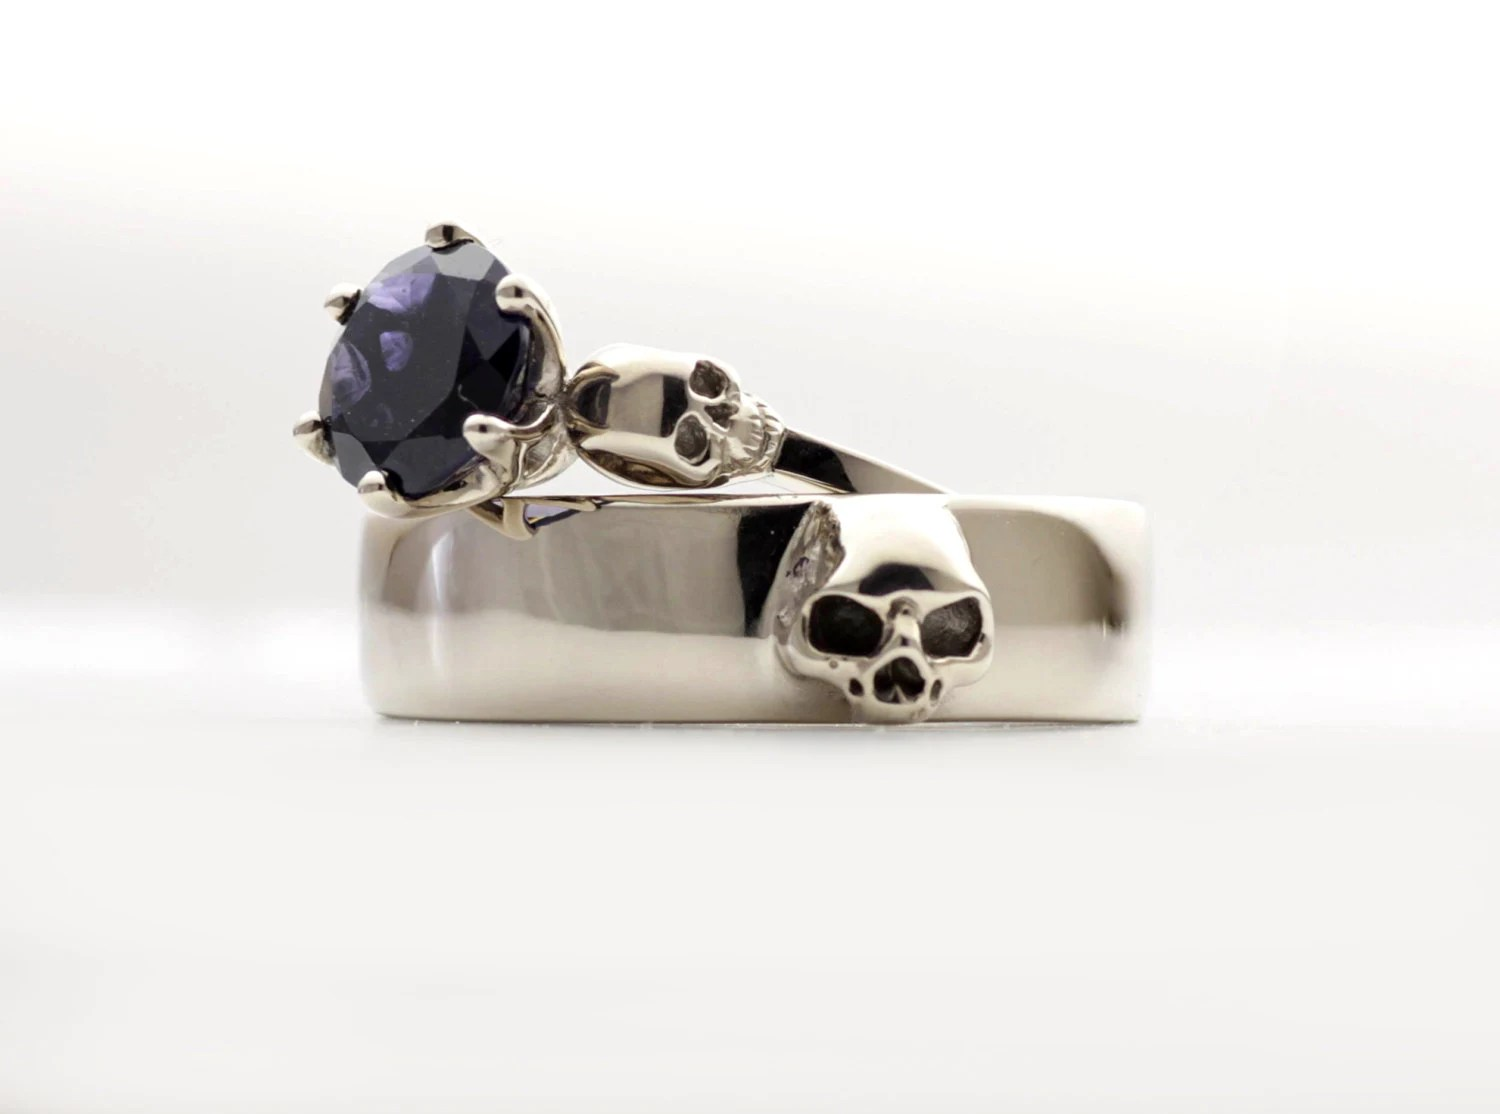 mens skull wedding ring white gold mens skull wedding rings Mens Skull Ring Psychobilly Wedding Band Wedding Set All Sizes gallery photo gallery photo gallery photo gallery photo gallery photo